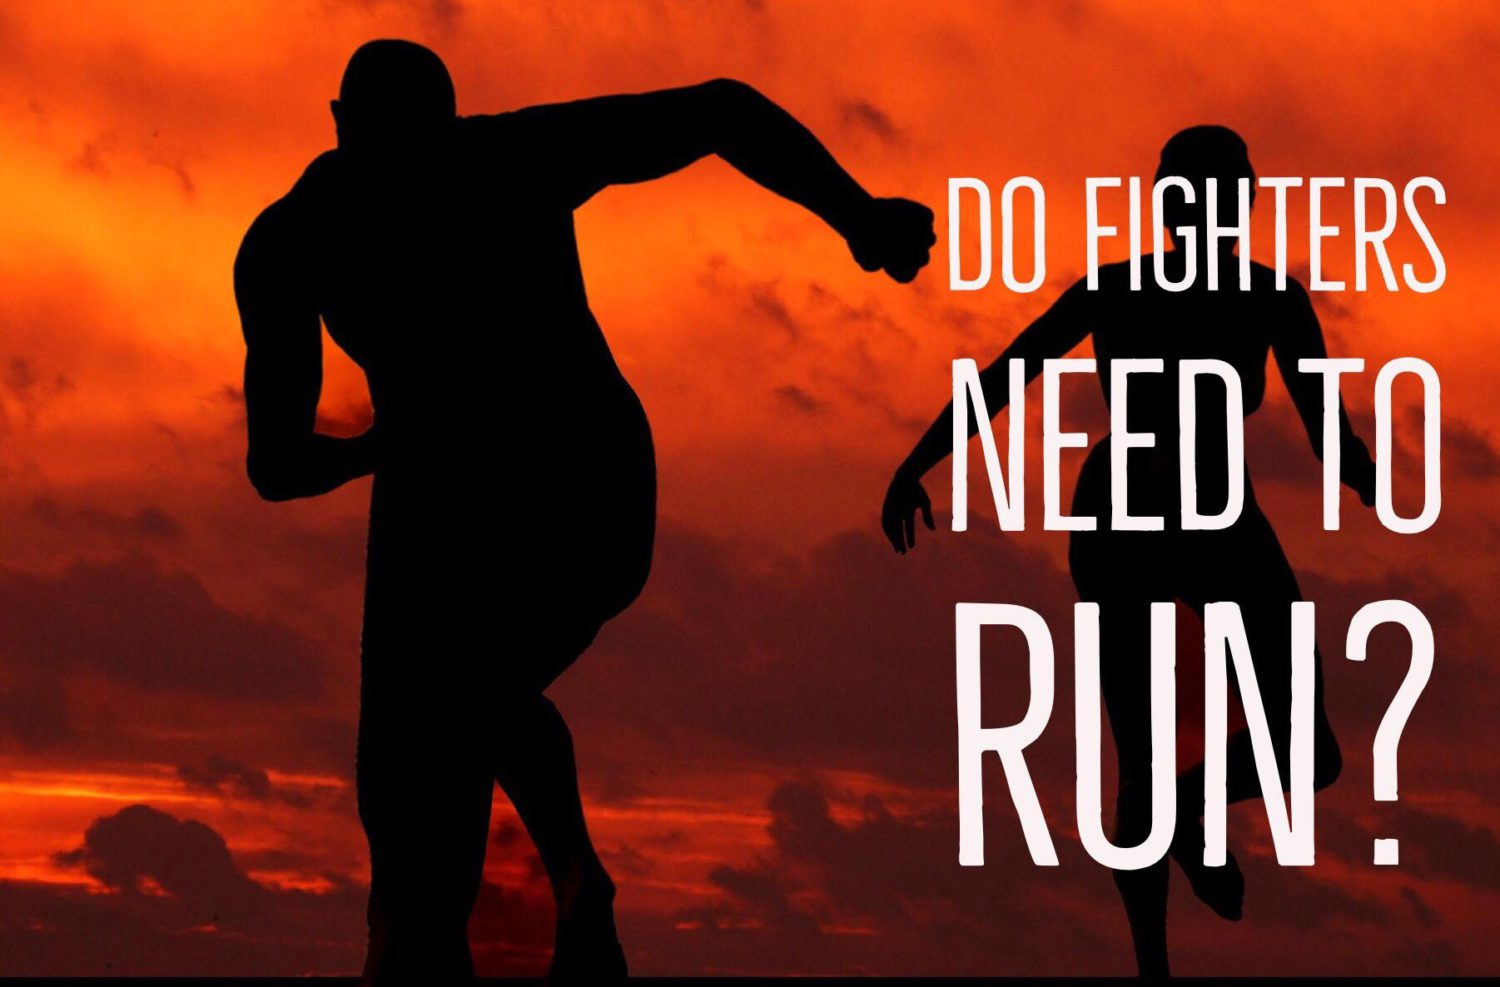 do fighters need to run?